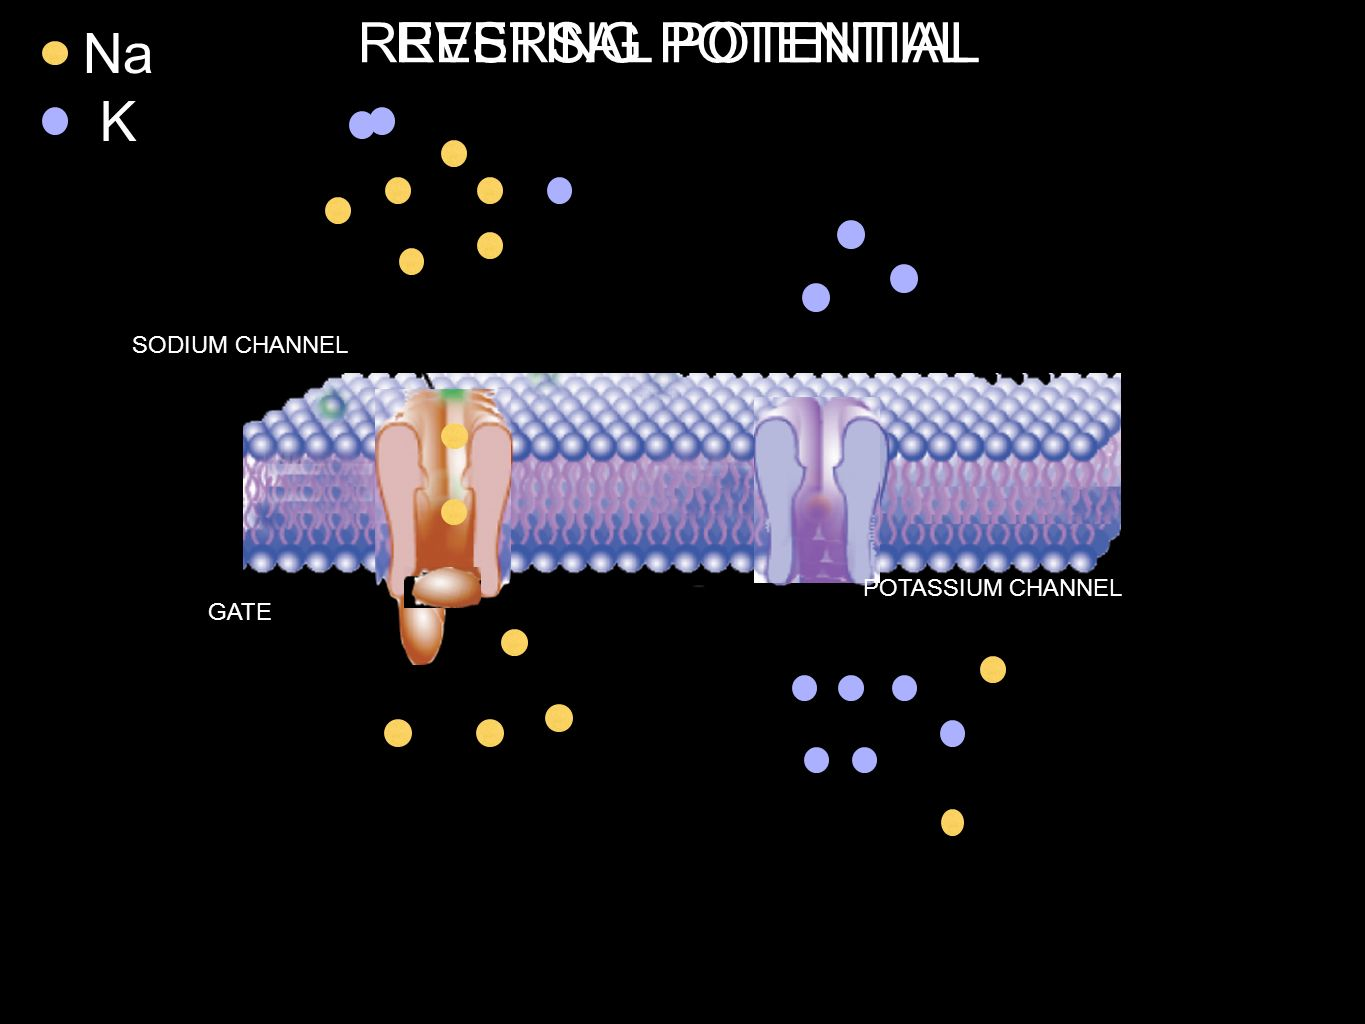 REVERSAL POTENTIAL RESTING POTENTIAL Na K SODIUM CHANNEL